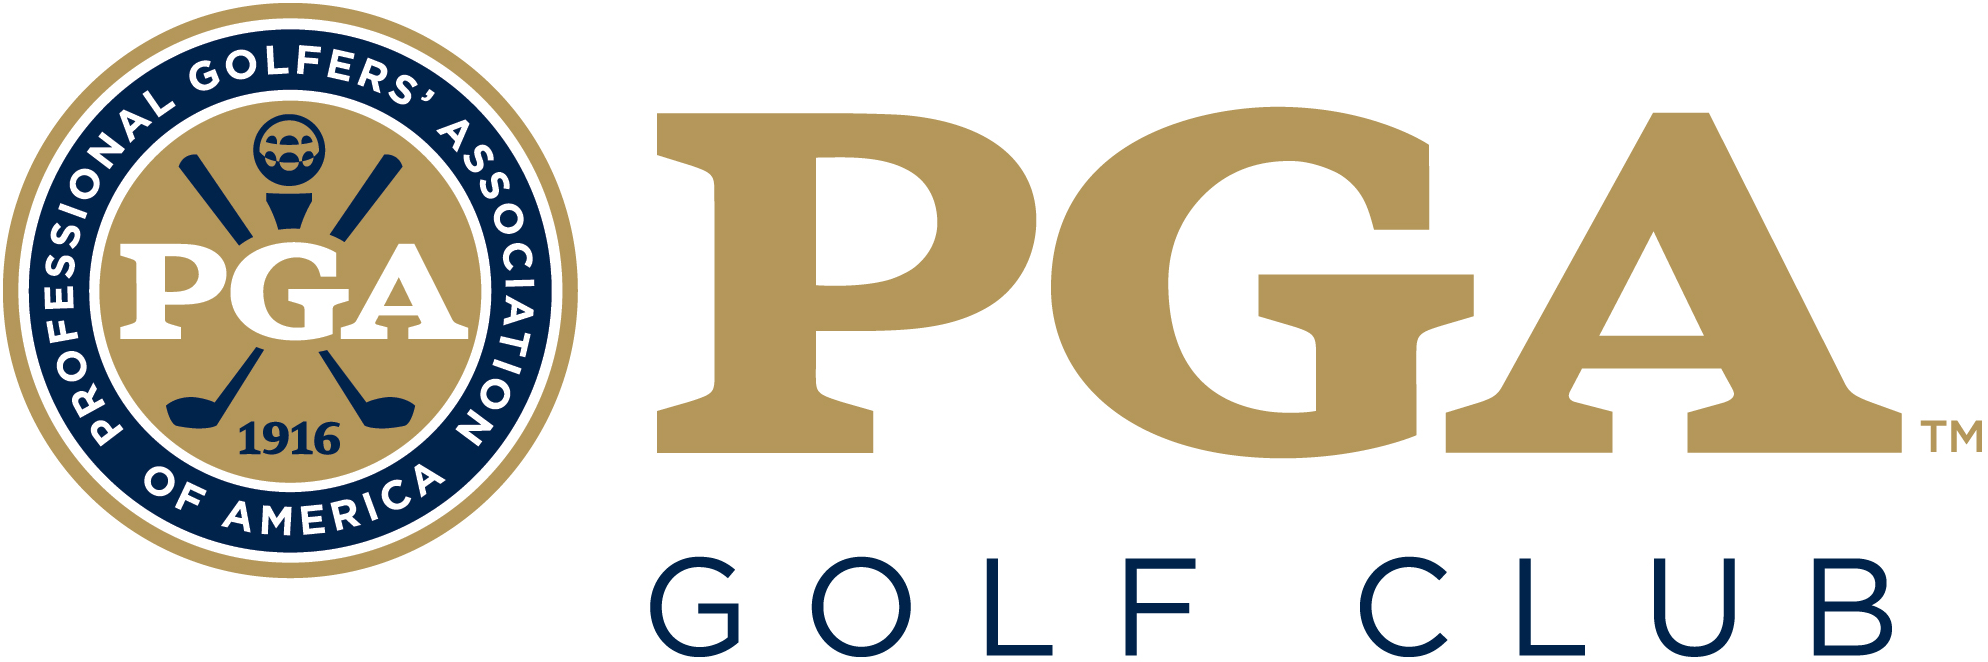 GGR (Jamie) - PGA | Center for Golf Learning & Performance